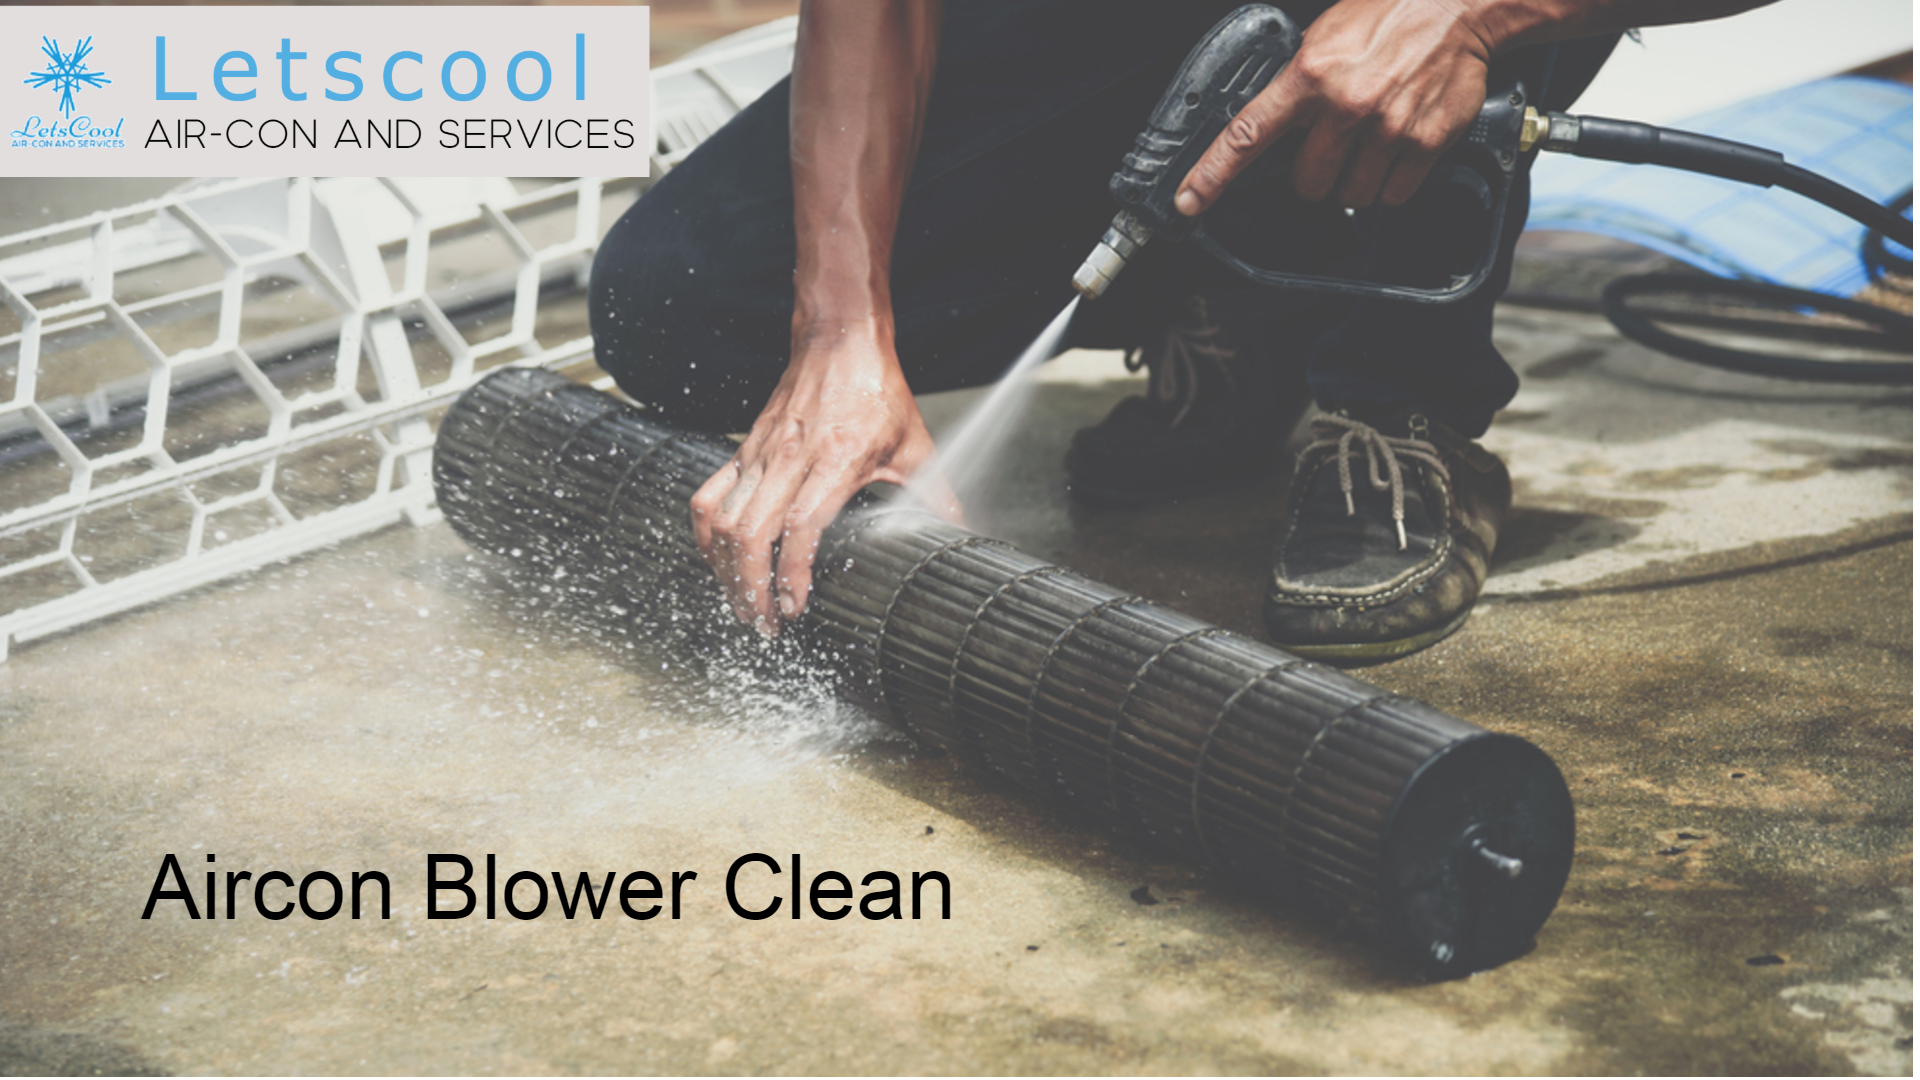 blower clean for air conditioner to reduce dusty air